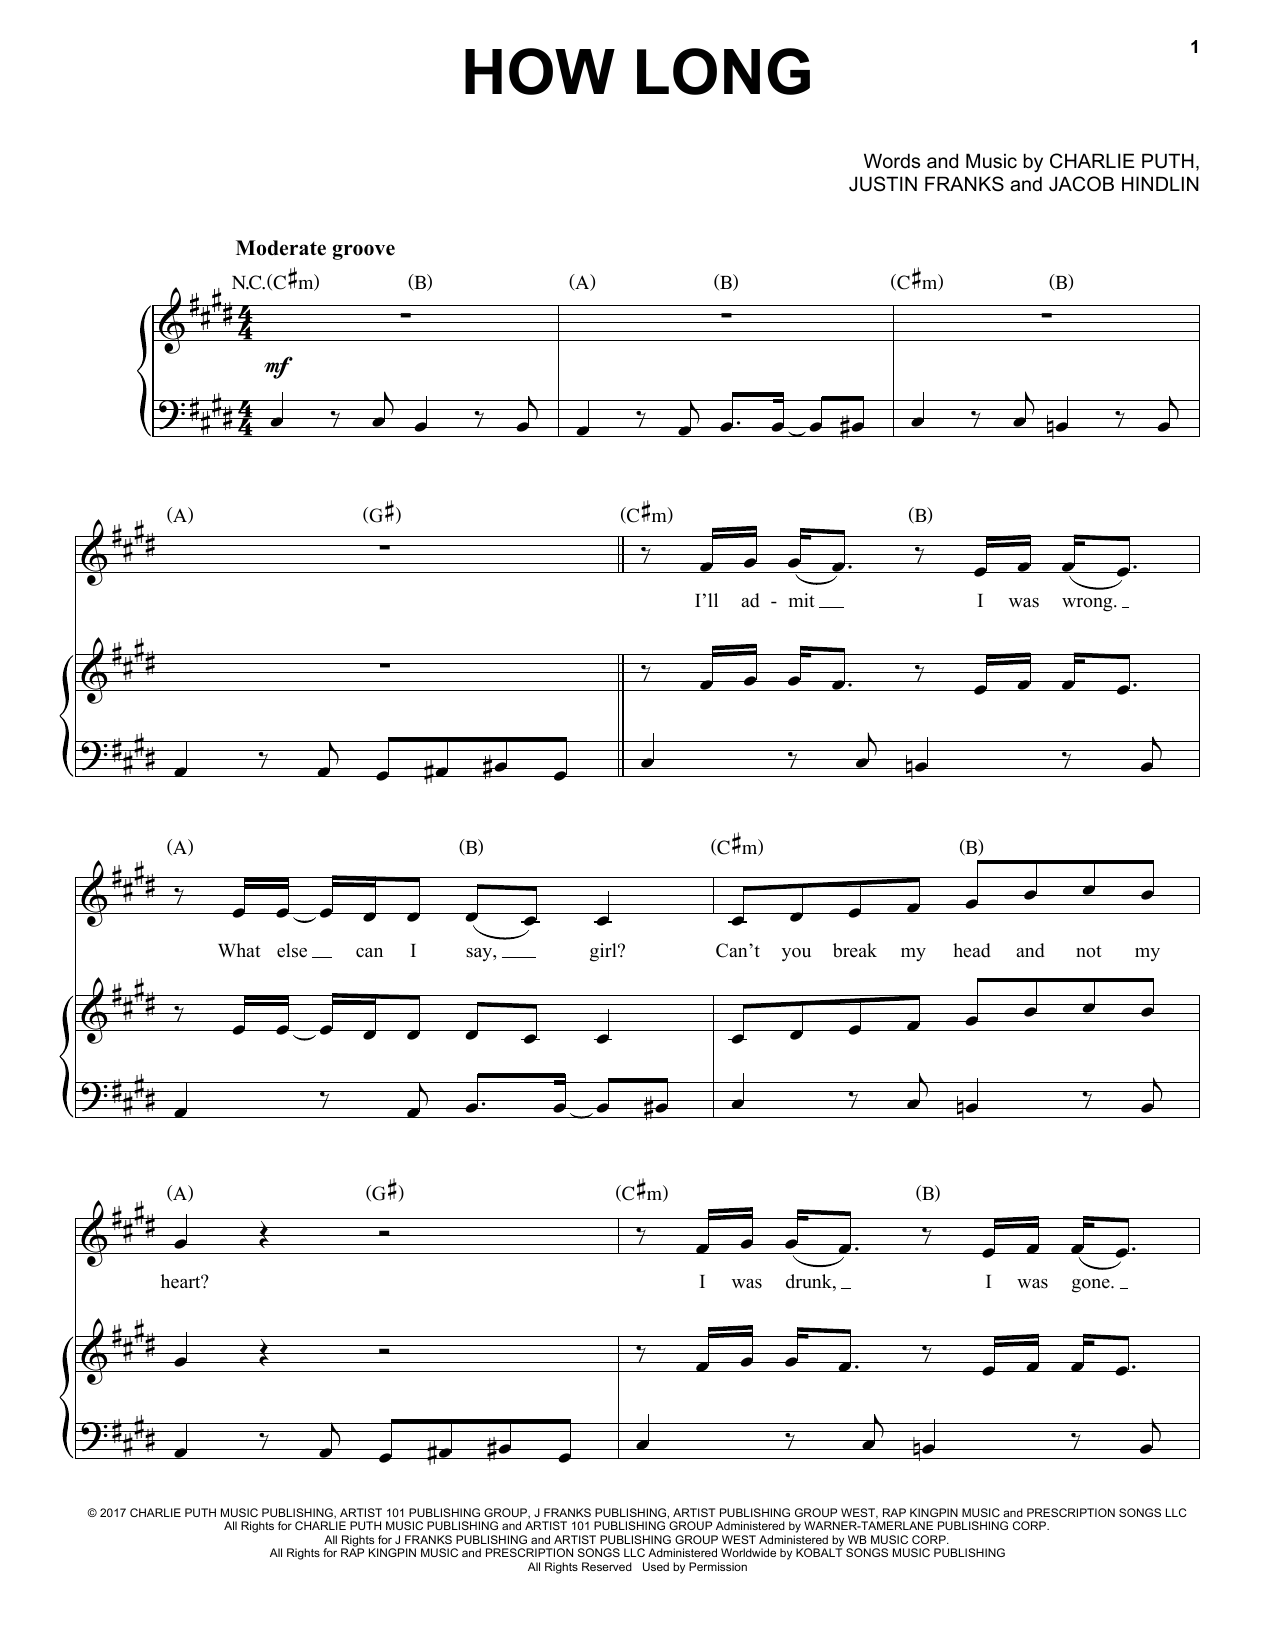 Charlie Puth How Long sheet music notes and chords. Download Printable PDF.